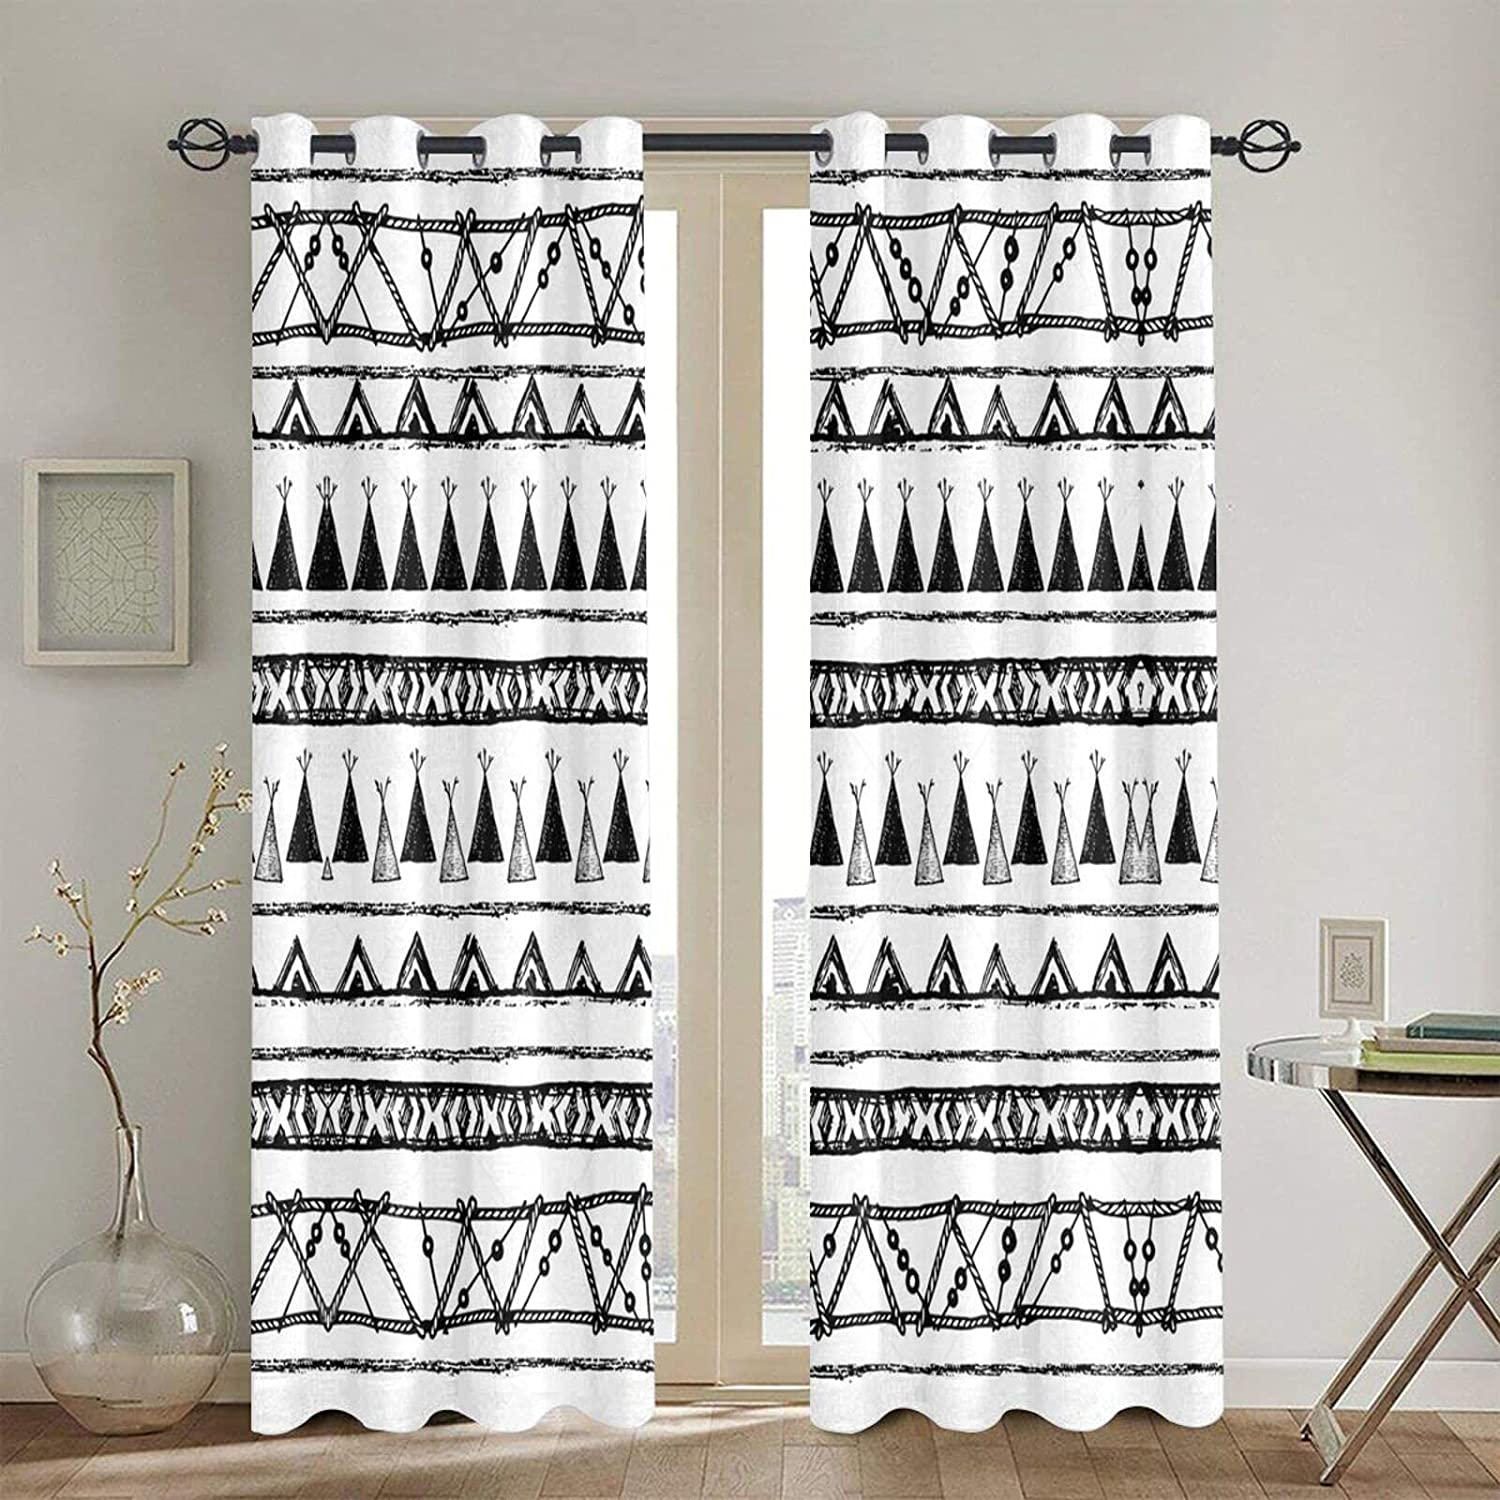 Curtain Native American Patterns Print Drapes, Thermal Insulated Blackout Privacy Protection Window Curtain Panels for Living Room and Bedroom (2 Panels, 52 X 84 in)